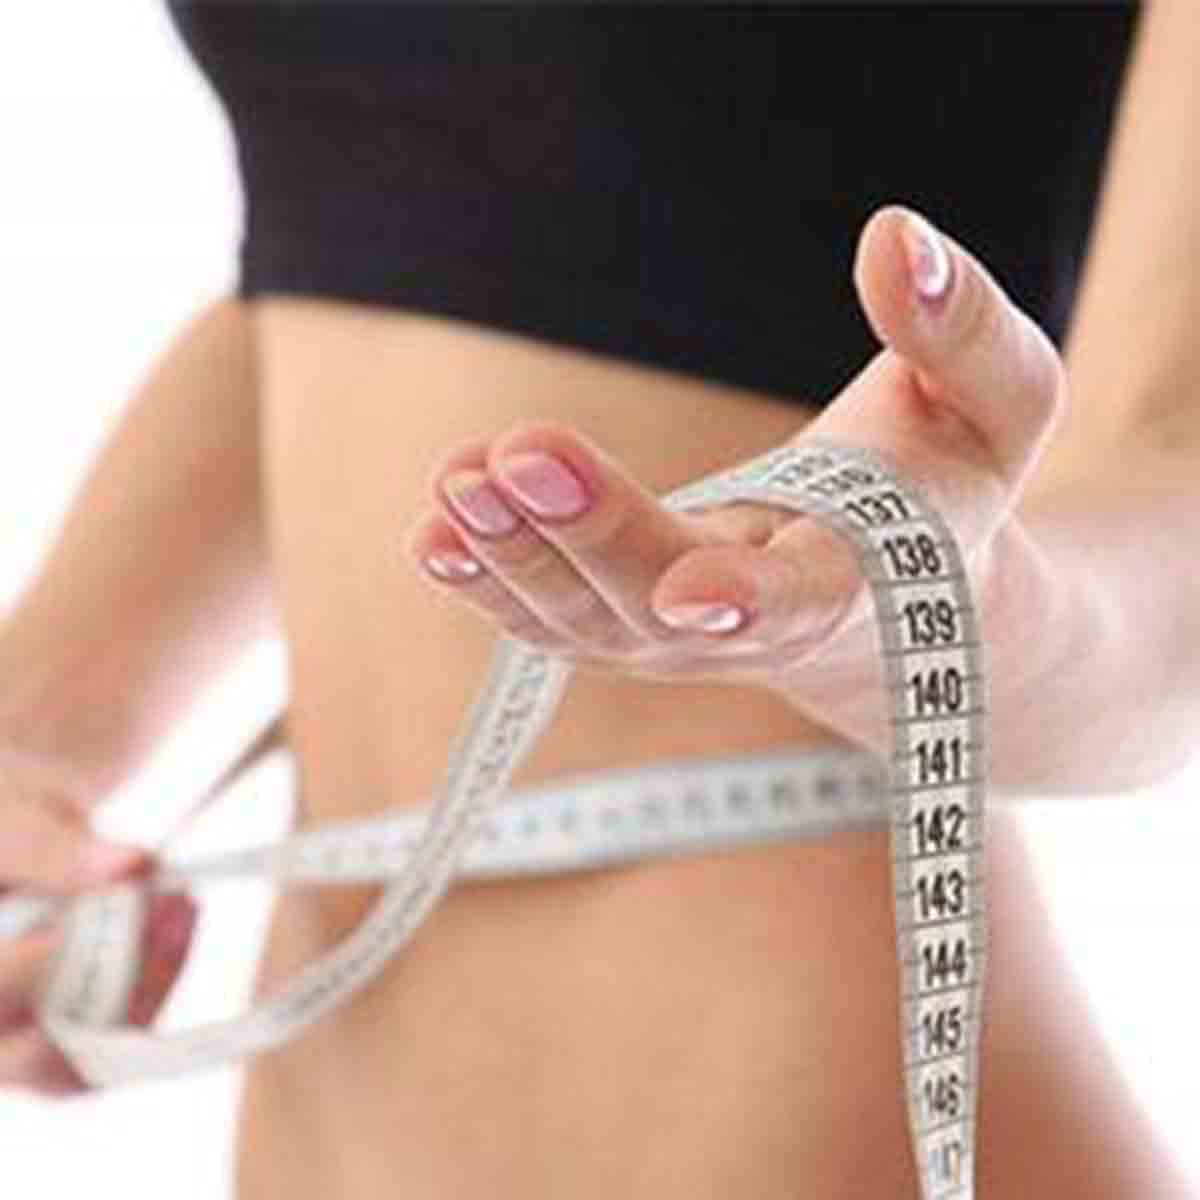 Ingredients In Supplement Make No Difference To Weight Loss - Woman Measuring Tape